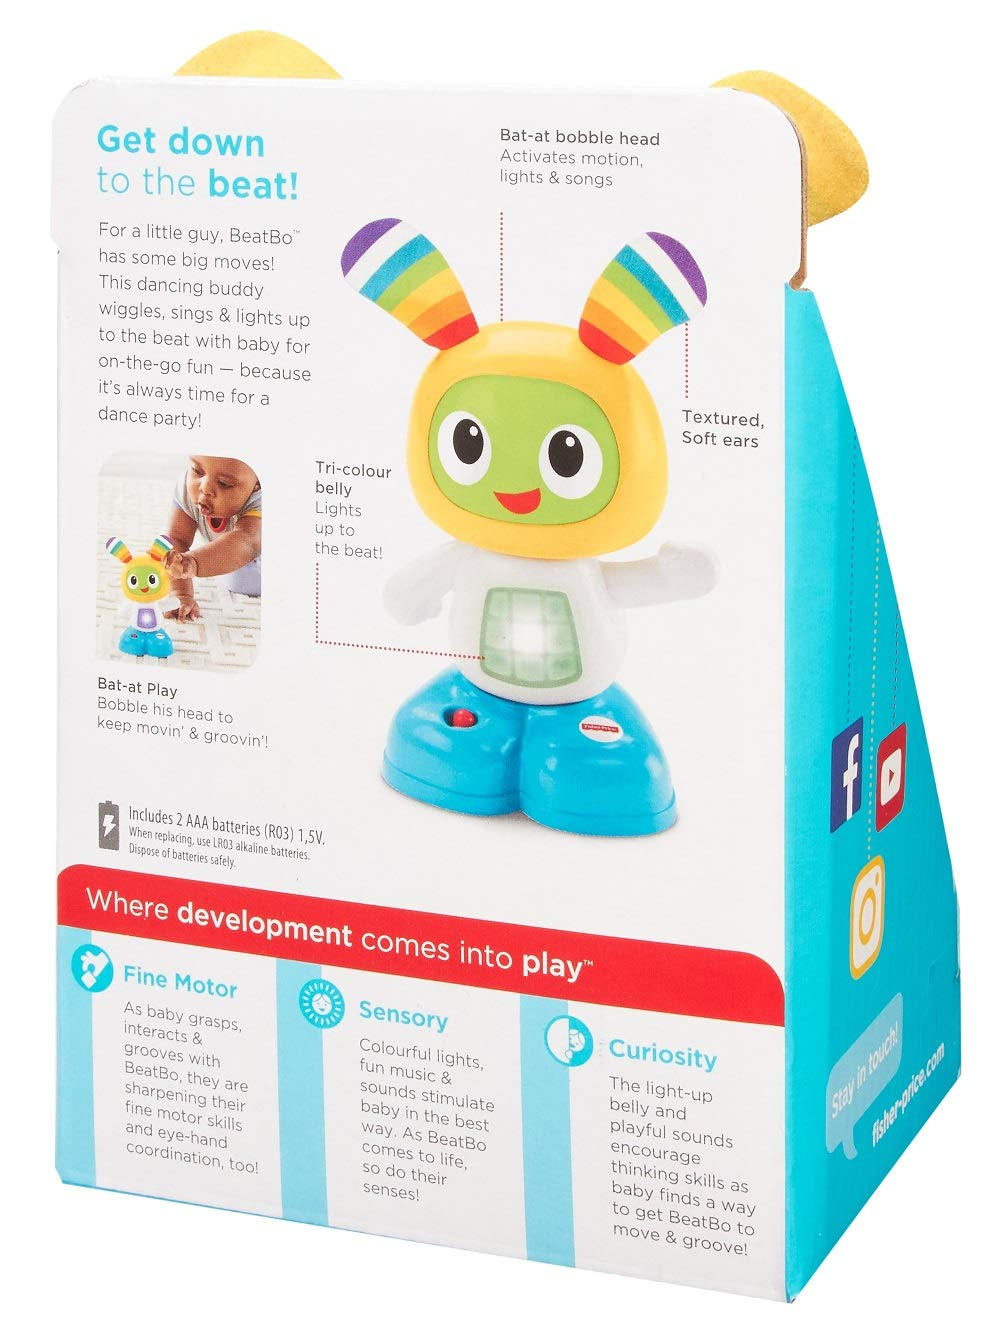 Fisher-Price FCW36 Juniors Beatbox, Baby Dance and Move Robot, Electronic Toy with Music and Lights, Suitable for 6 Months Plus